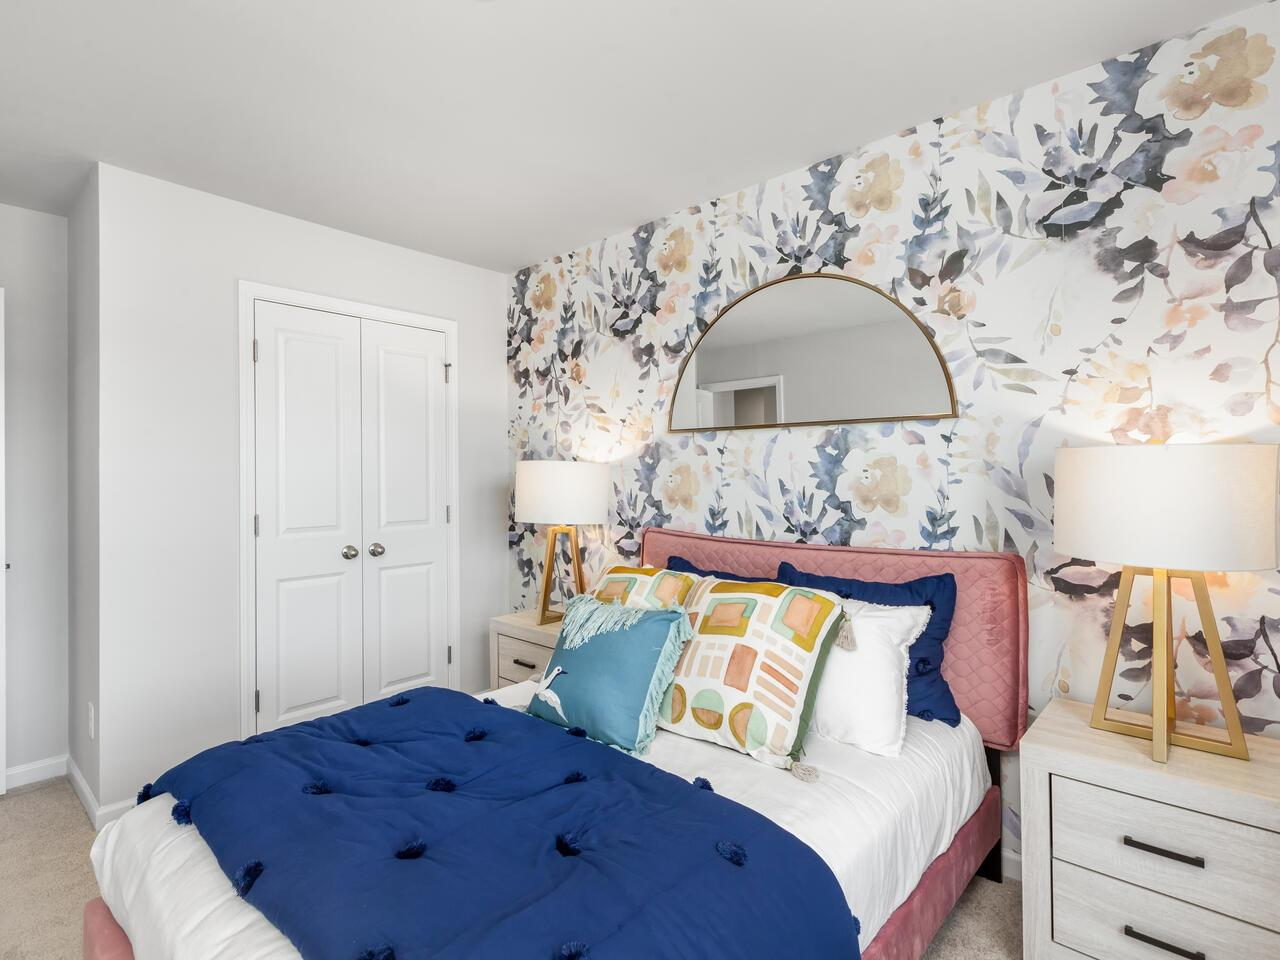 Bedroom featured in the DAVIS By D.R. Horton in Wilmington, NC